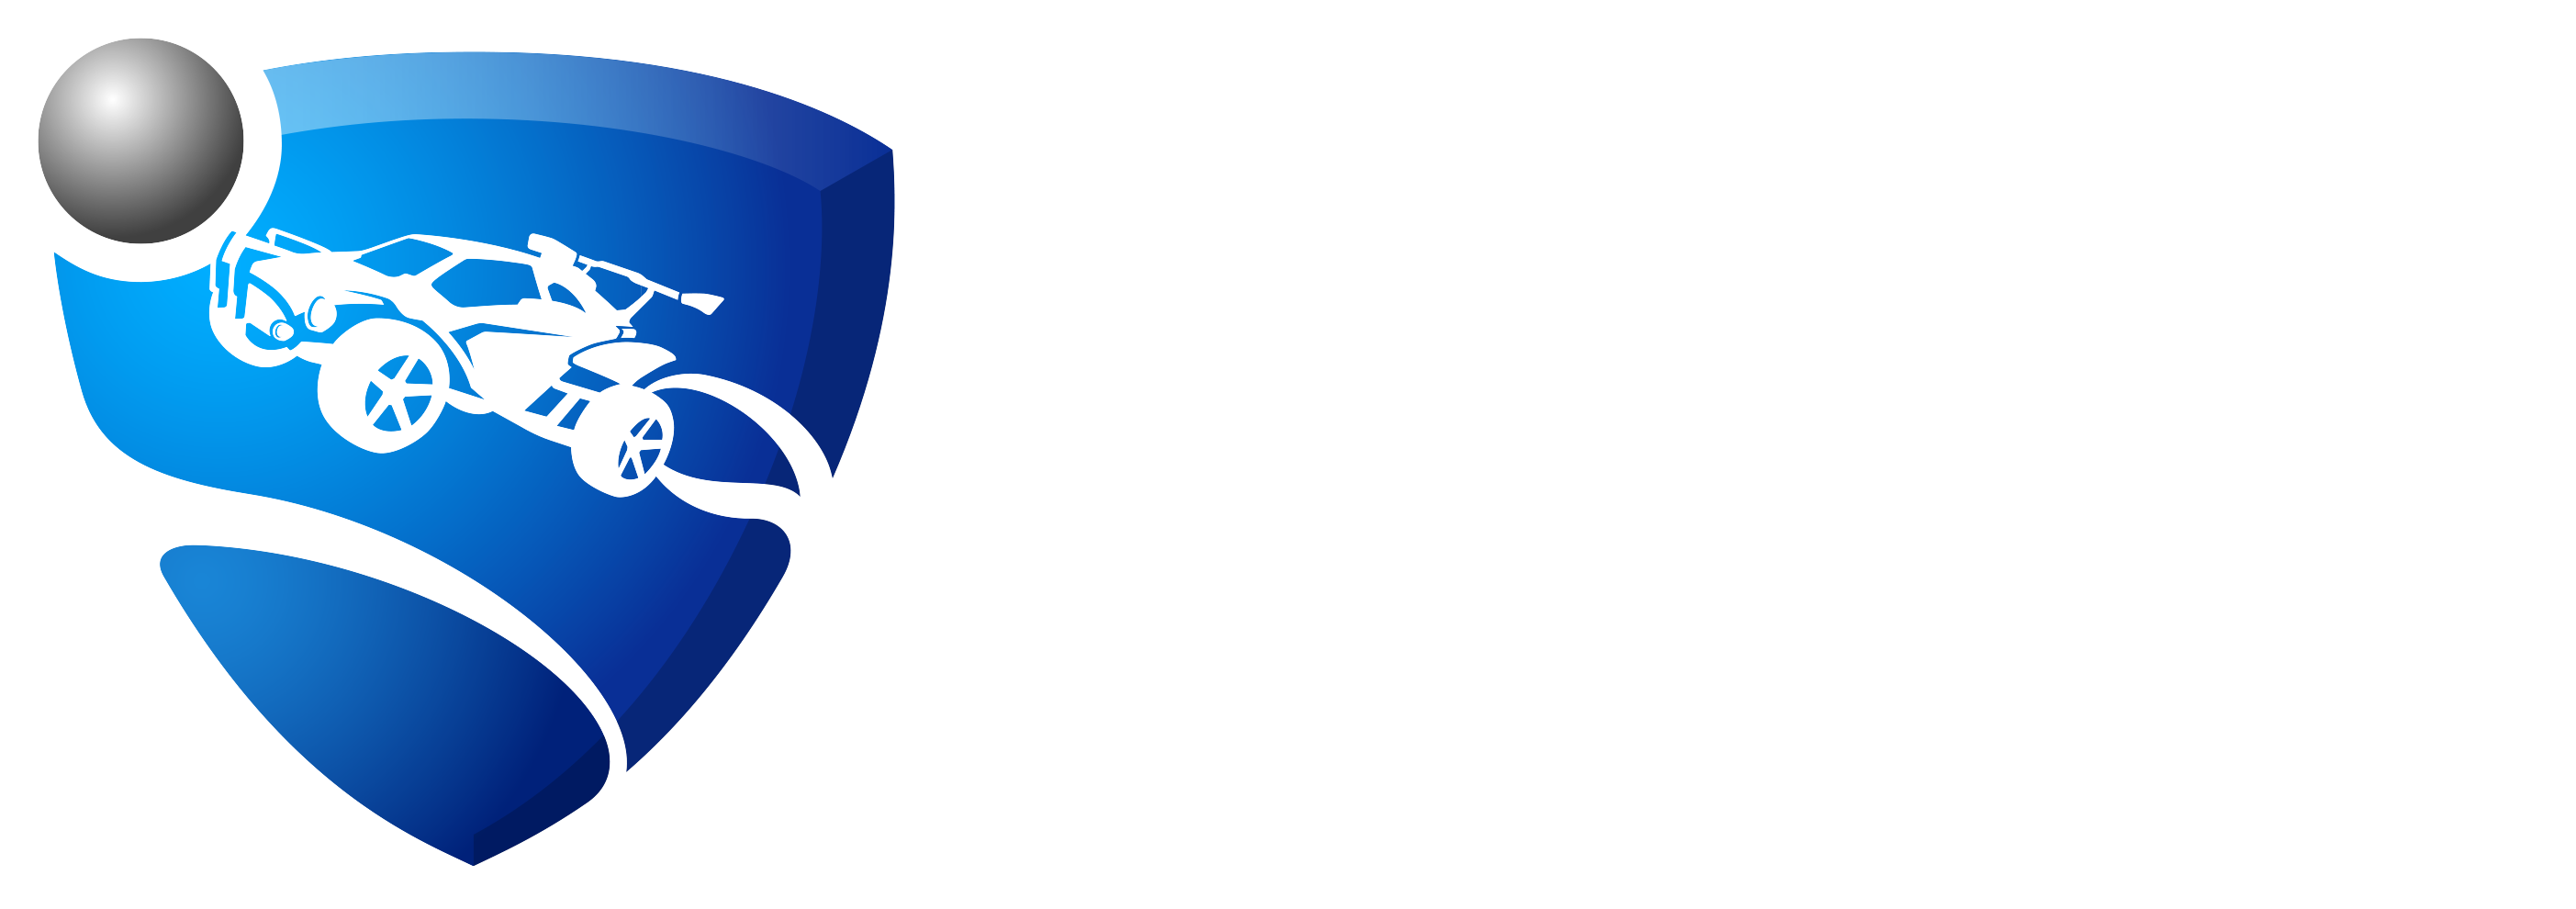 Dropshot league official site. Clipart rocket trail